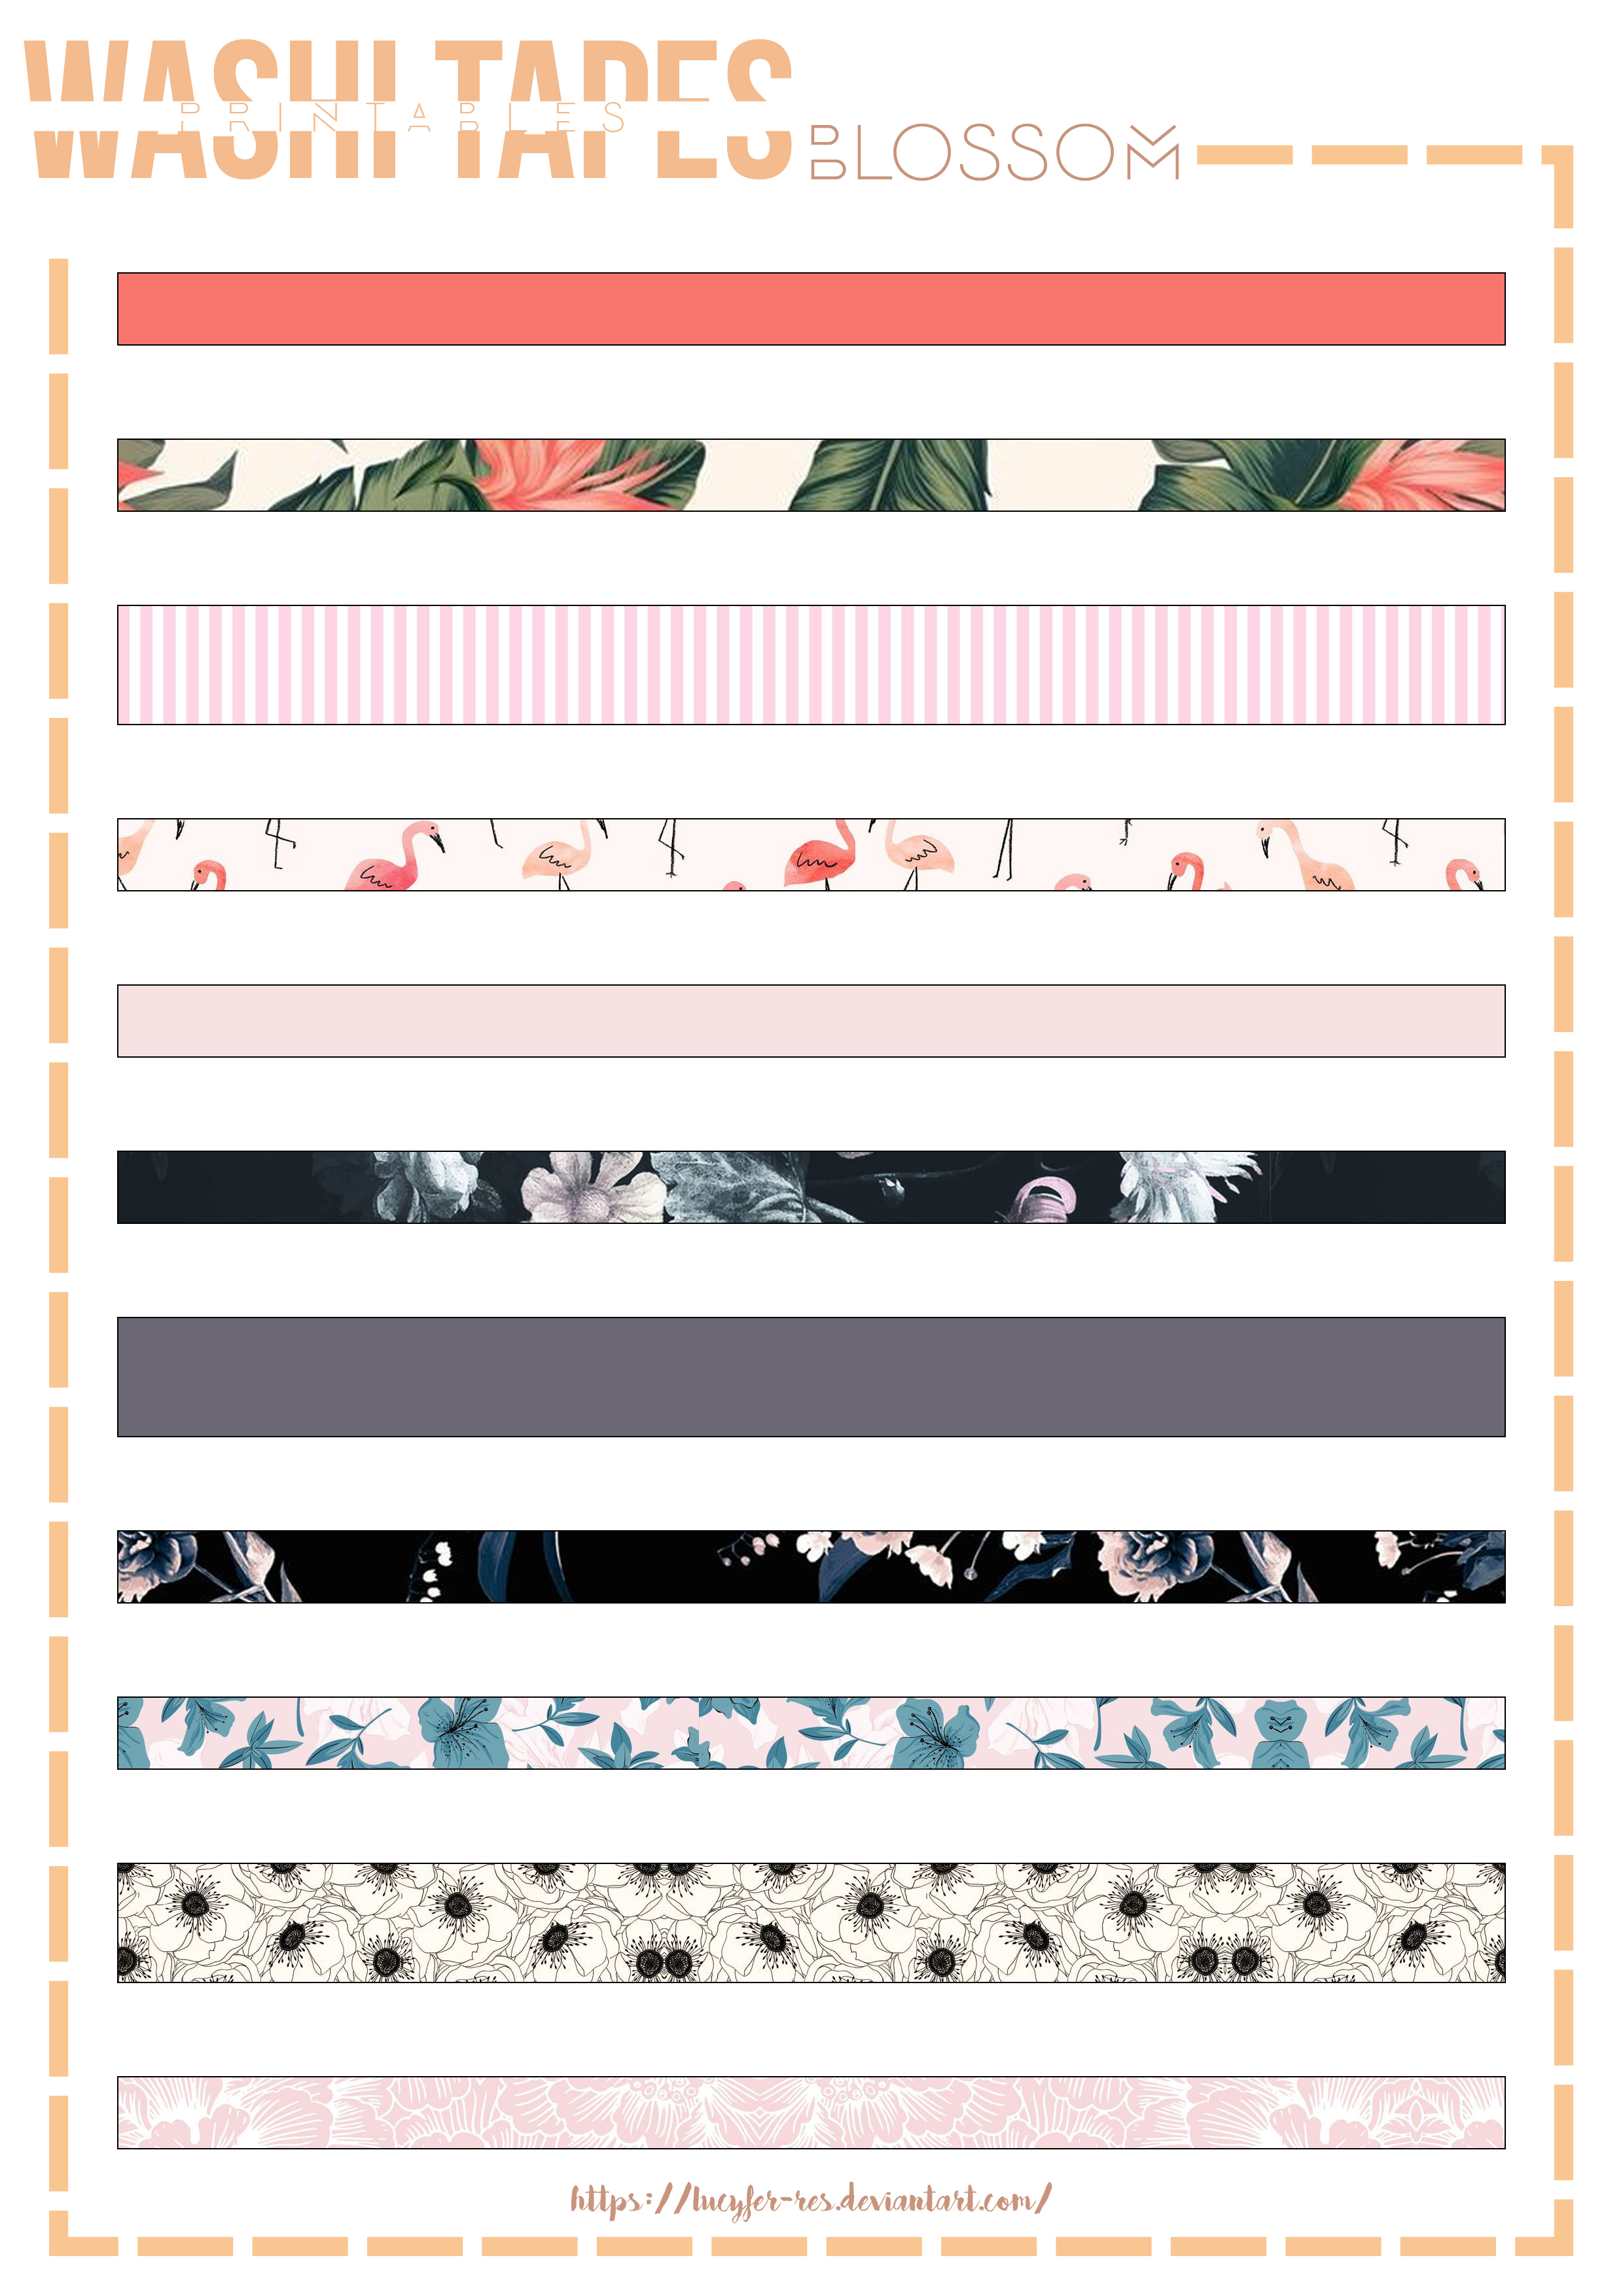 Blossom Printable Washi Tapes By Lucyfer Res On Deviantart